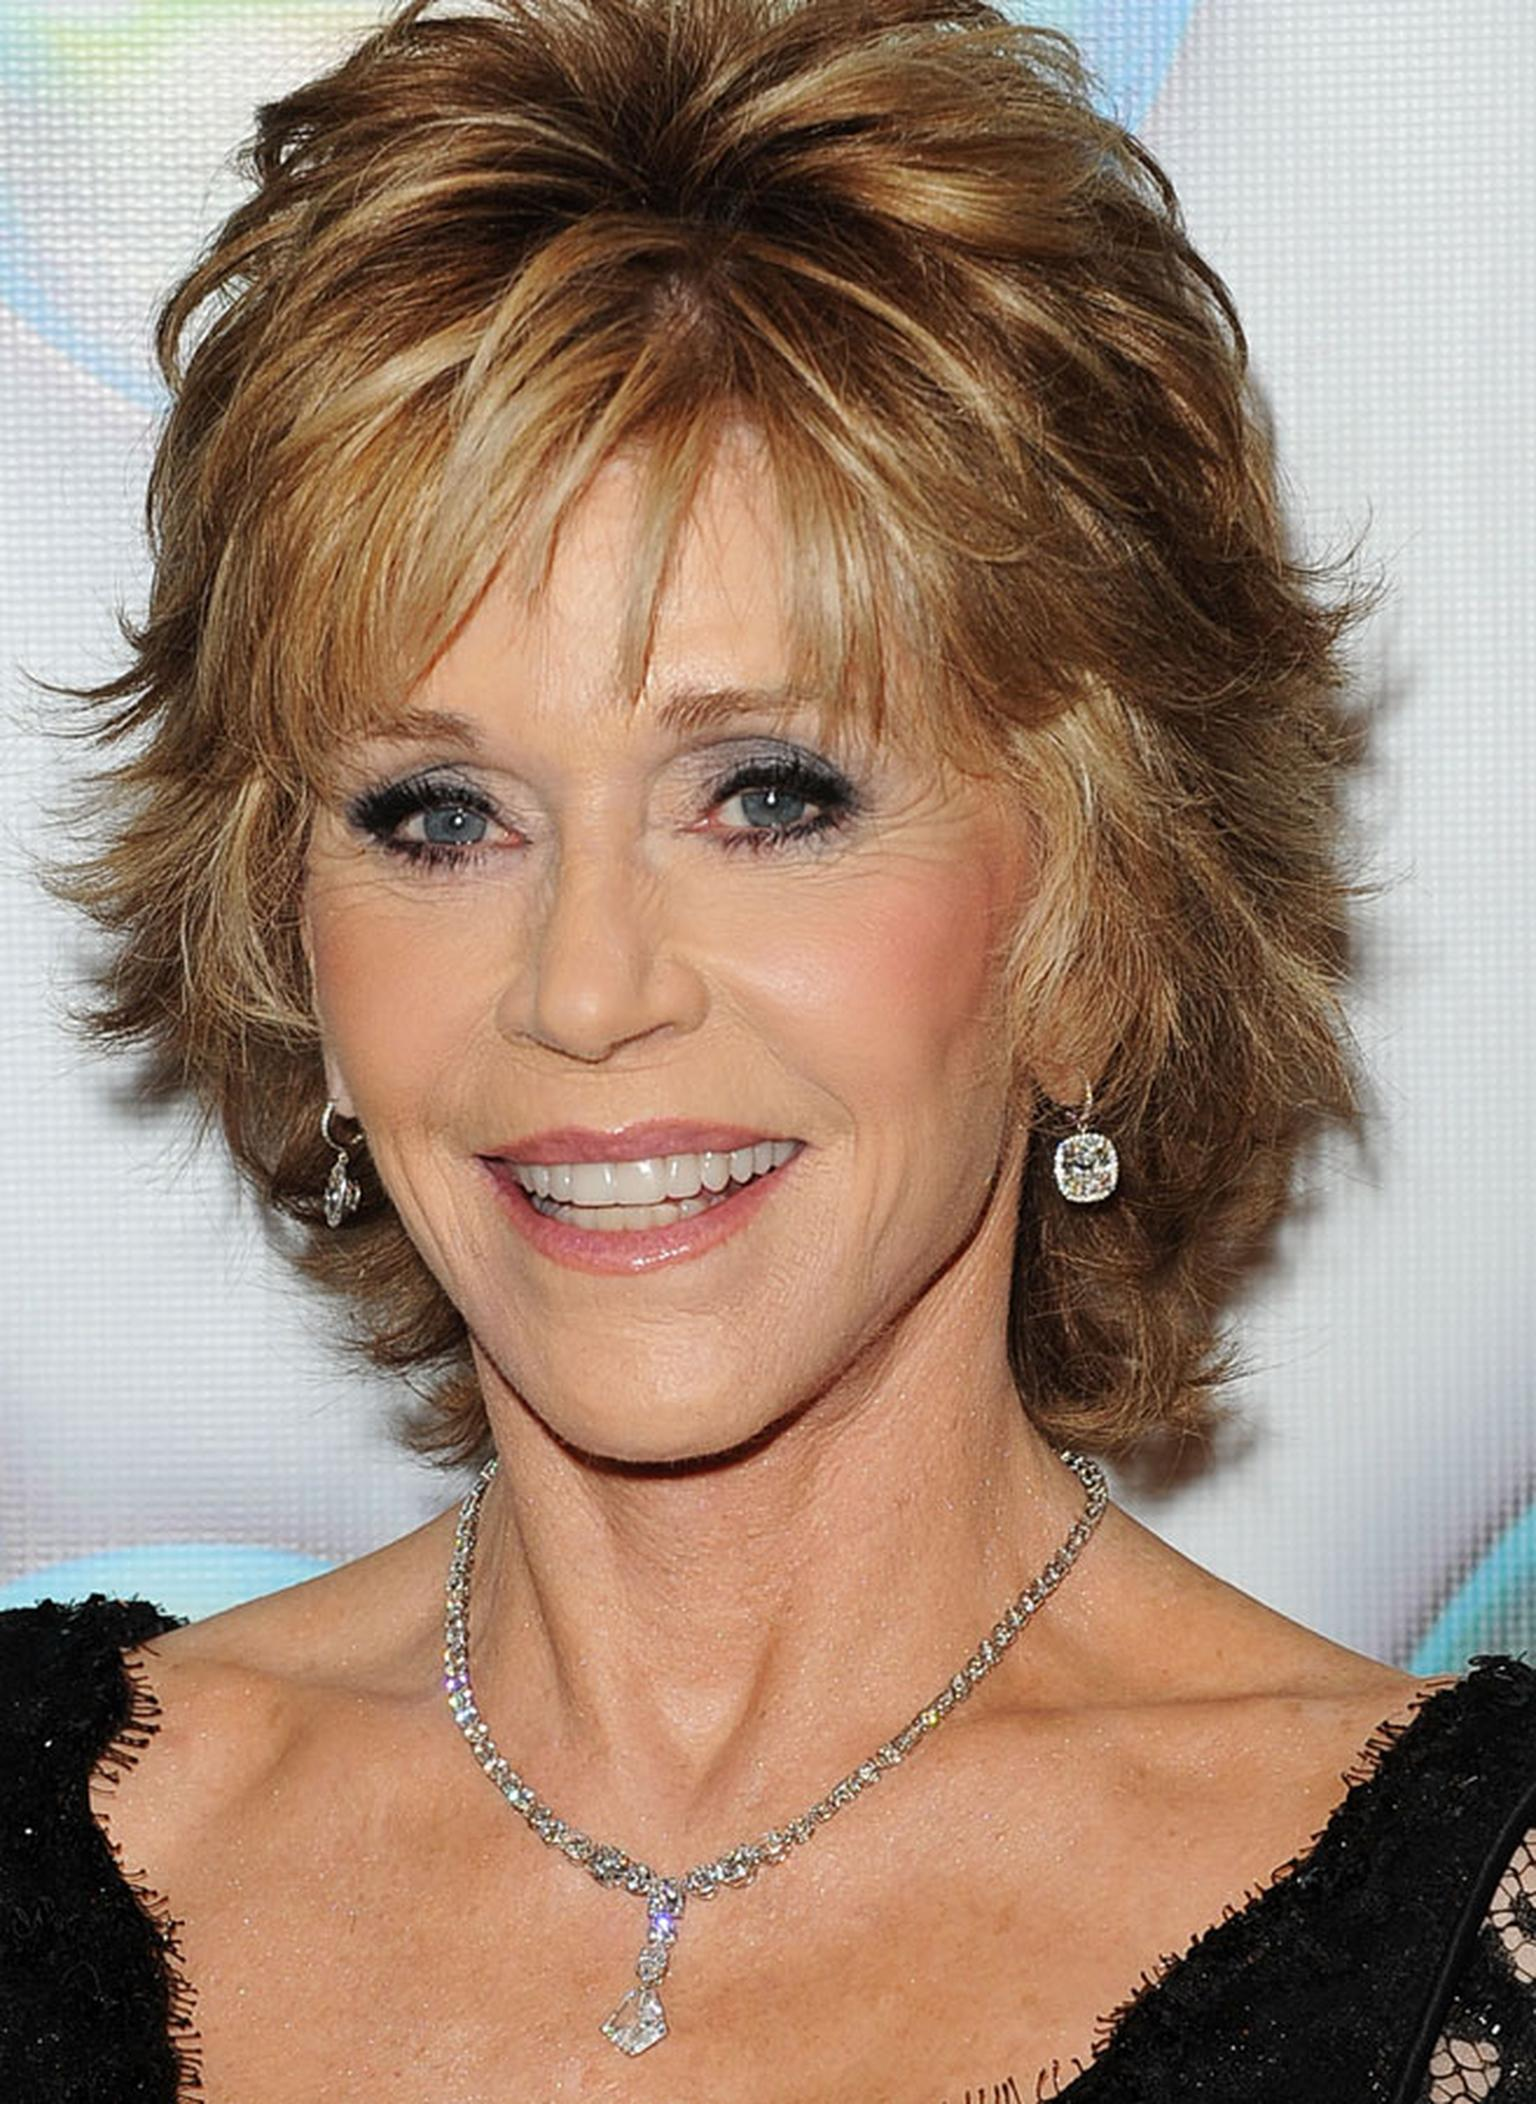 Jane Fonda wearing Chopard at the 69th Annual Golden Globe Awards - L.A., January 15th 2012_1